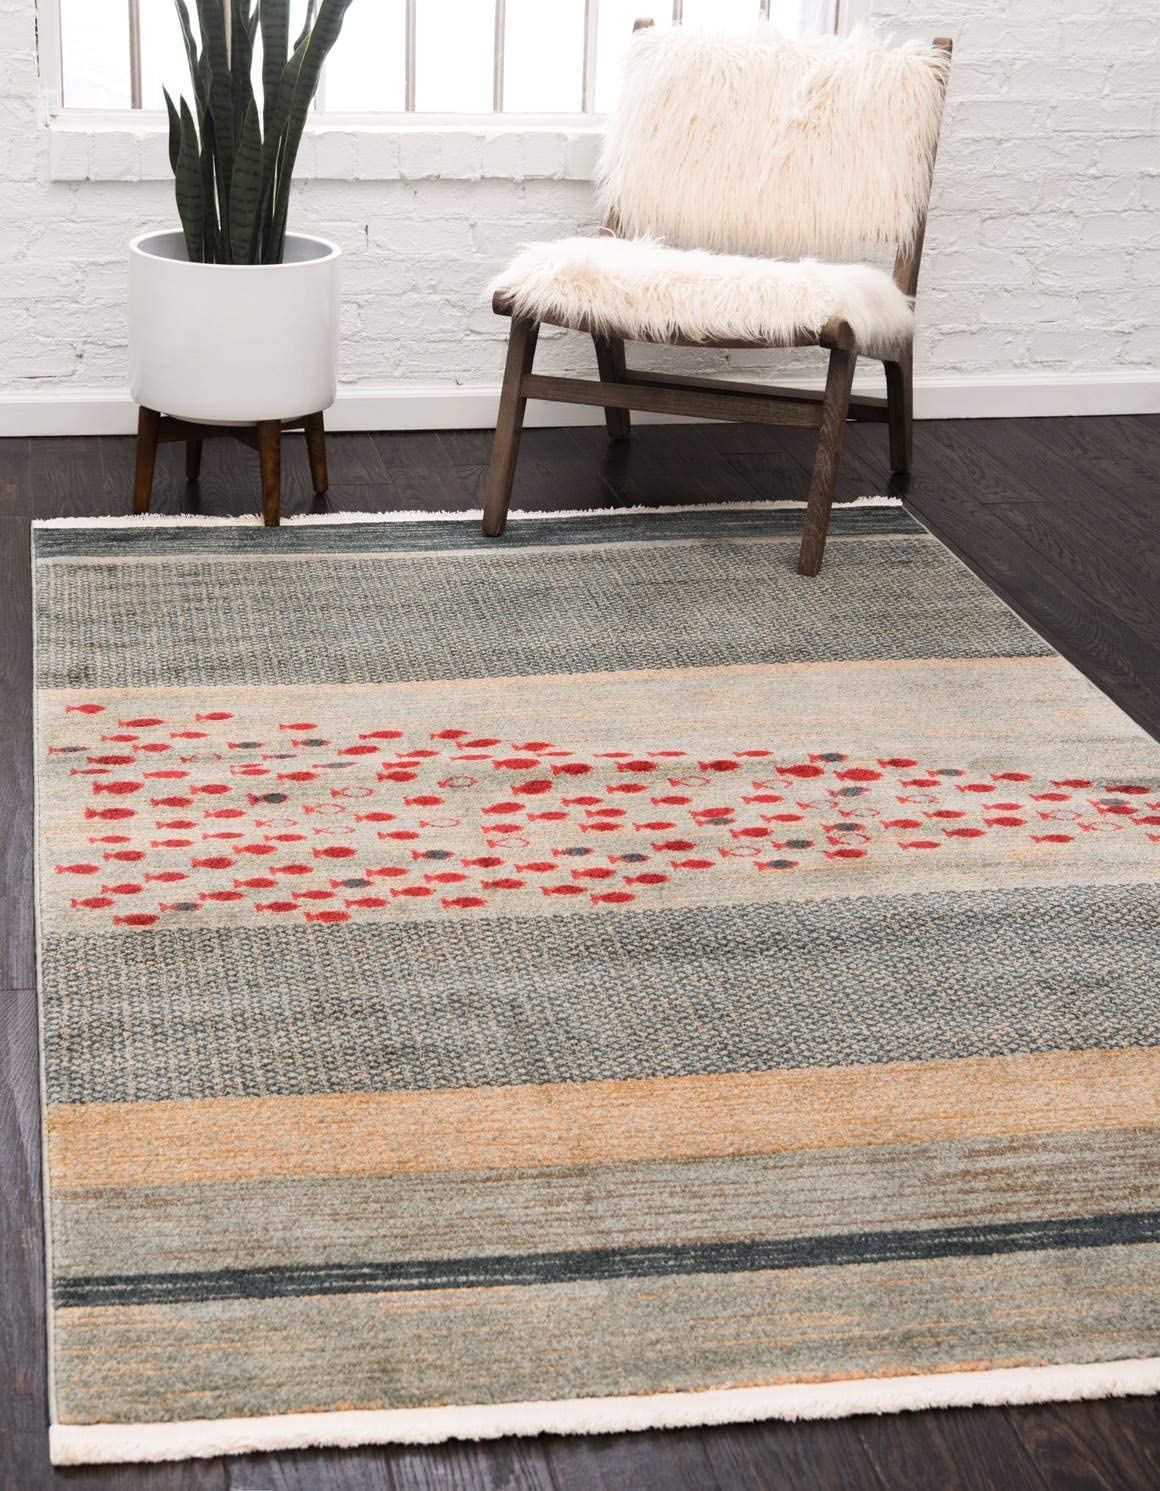 Unique Loom Fars Collection Tribal Modern Casual Blue Area Rug 8 0 x 10 0